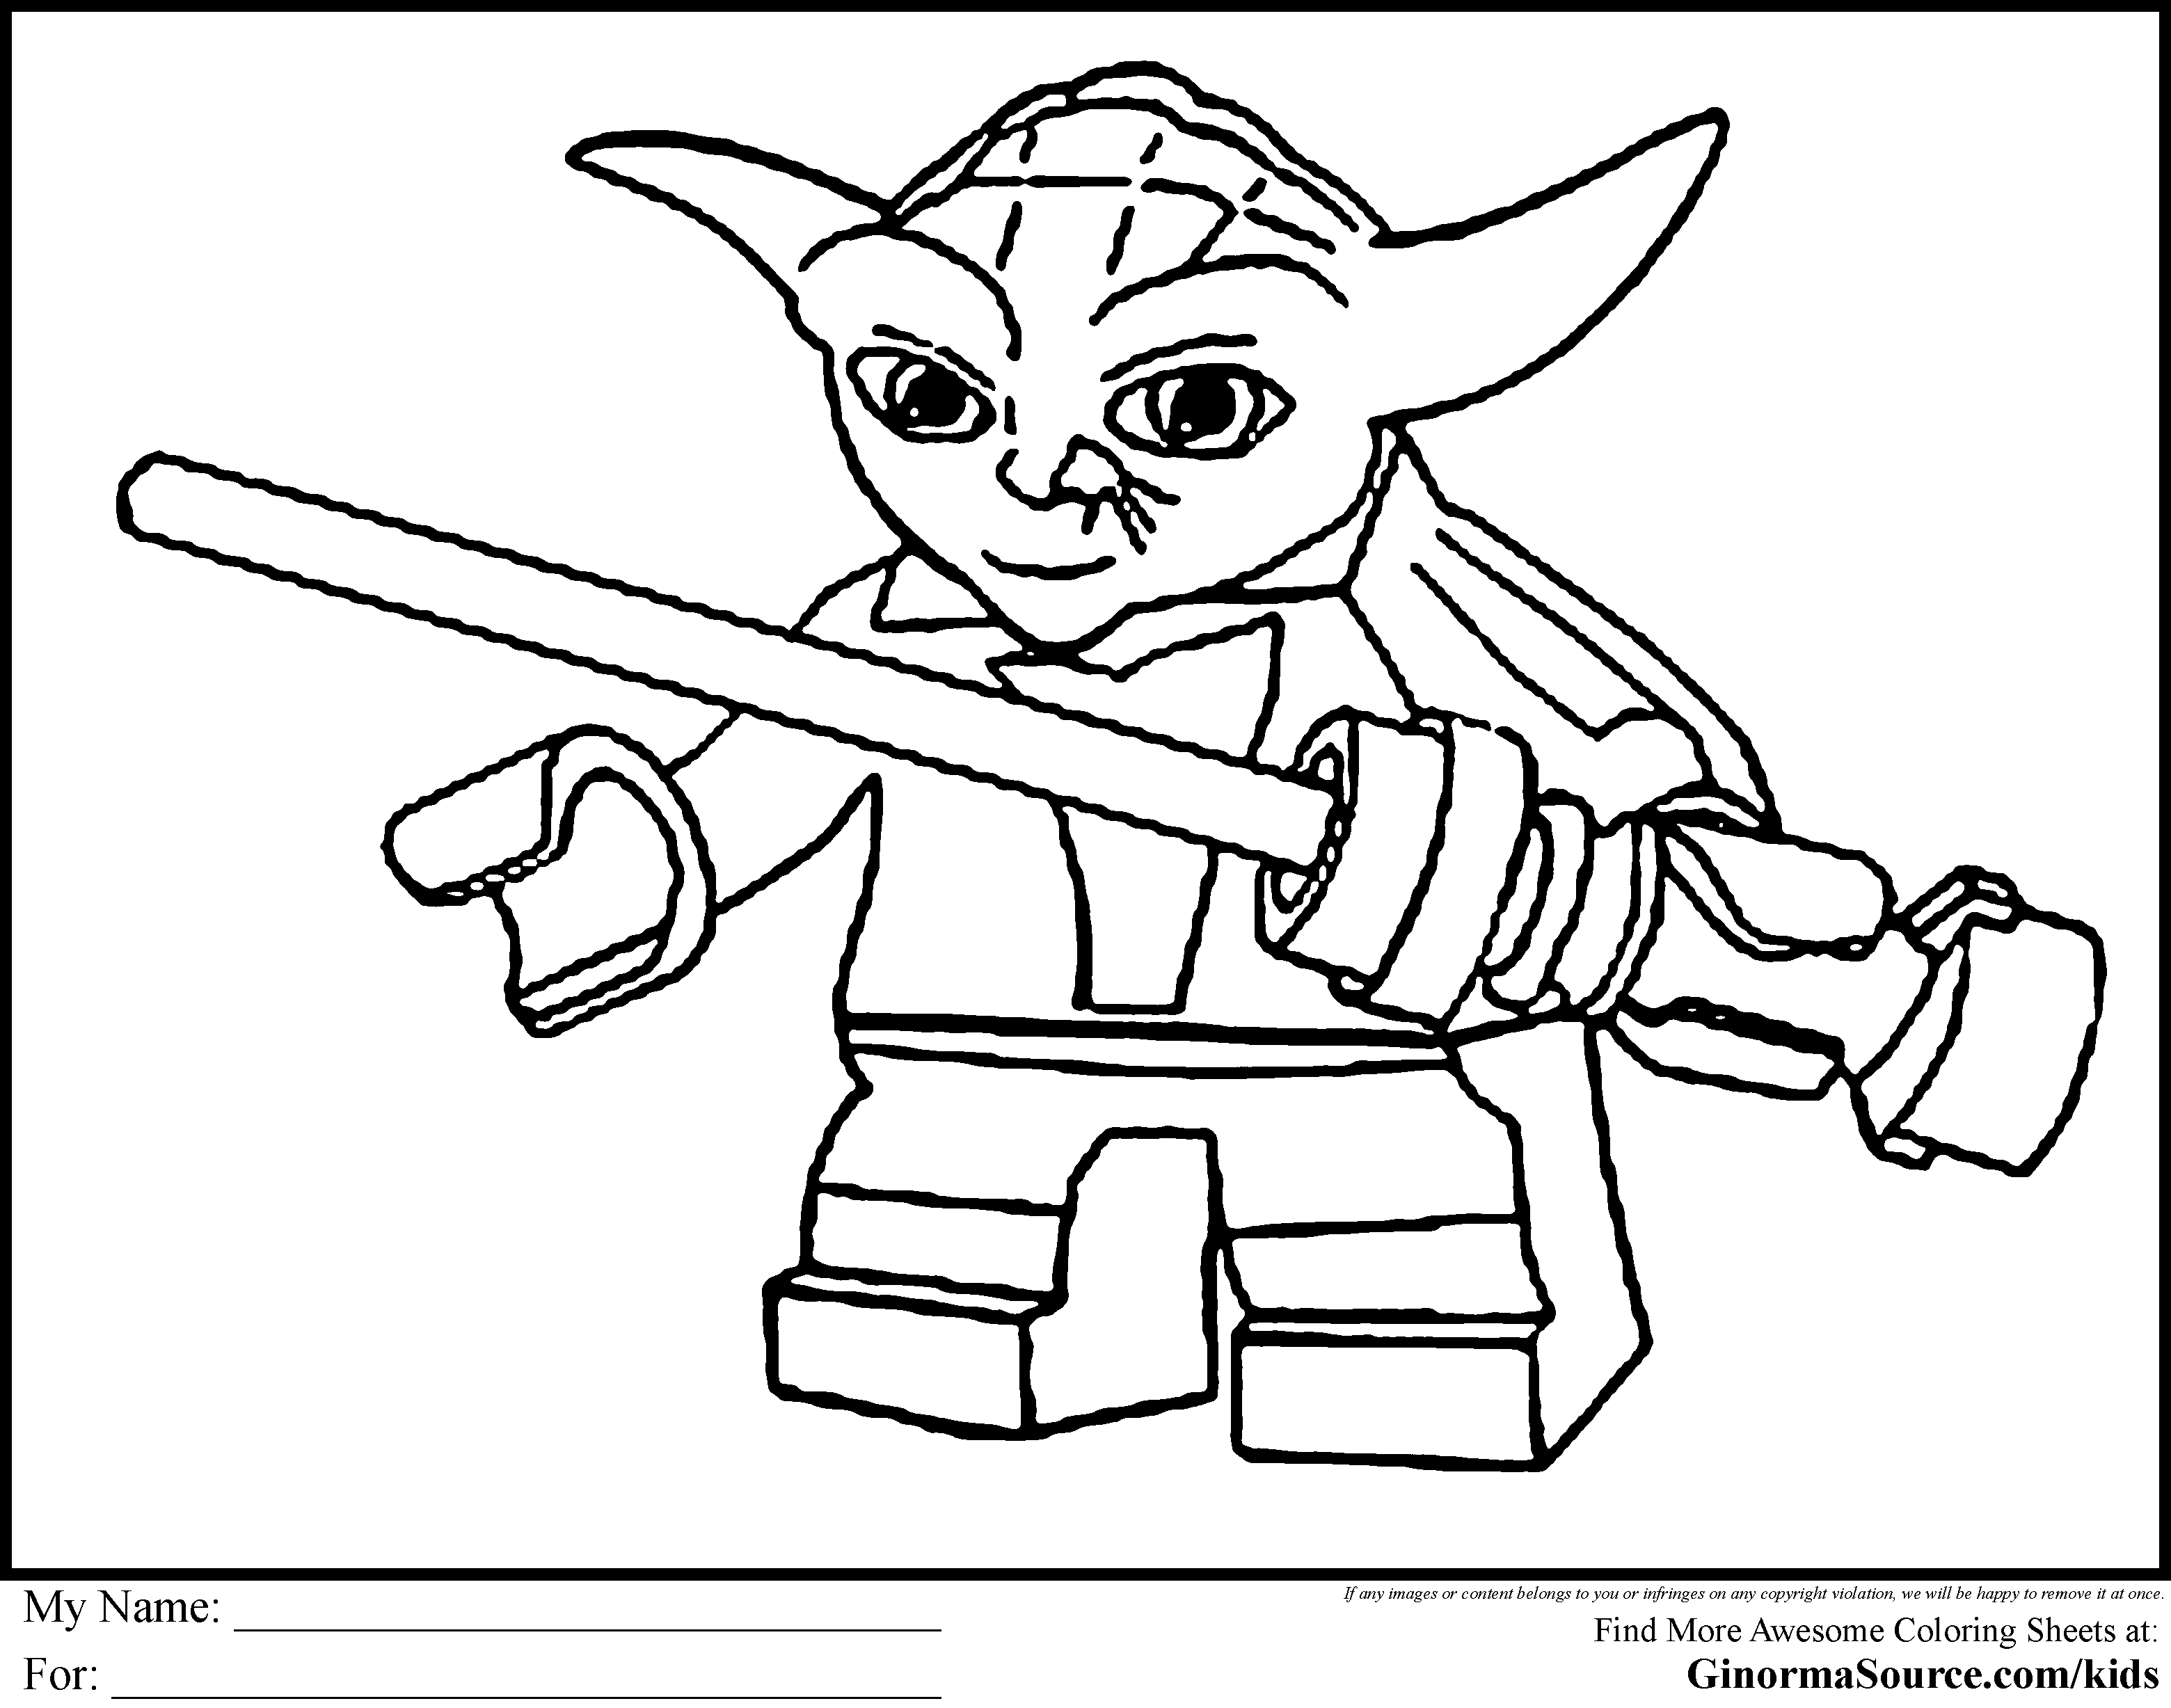 lego star wars color pages lego star wars coloring pages best coloring pages for kids wars star lego color pages